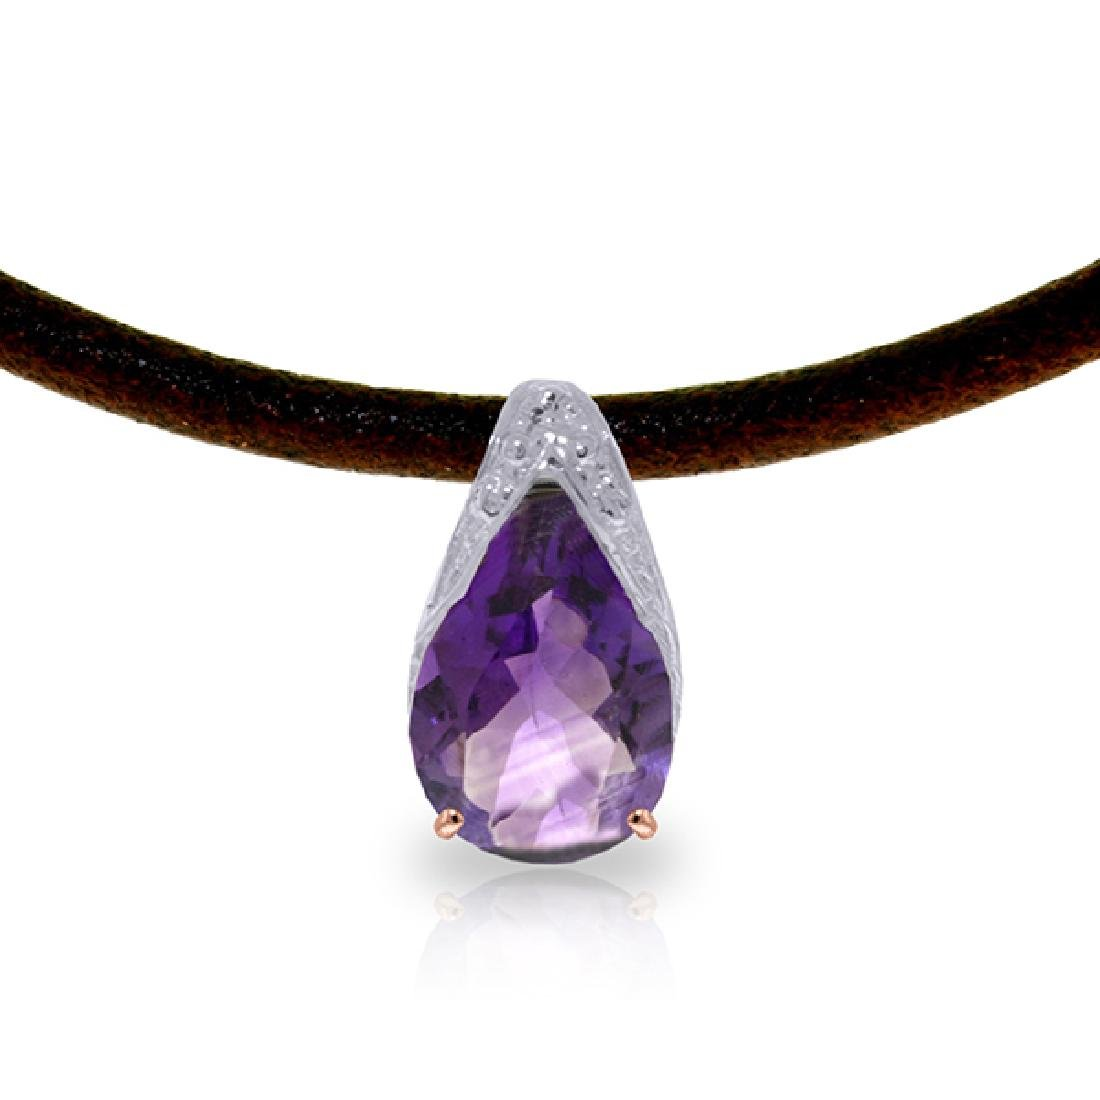 Genuine 6 ctw Amethyst Necklace Jewelry 14KT Rose Gold